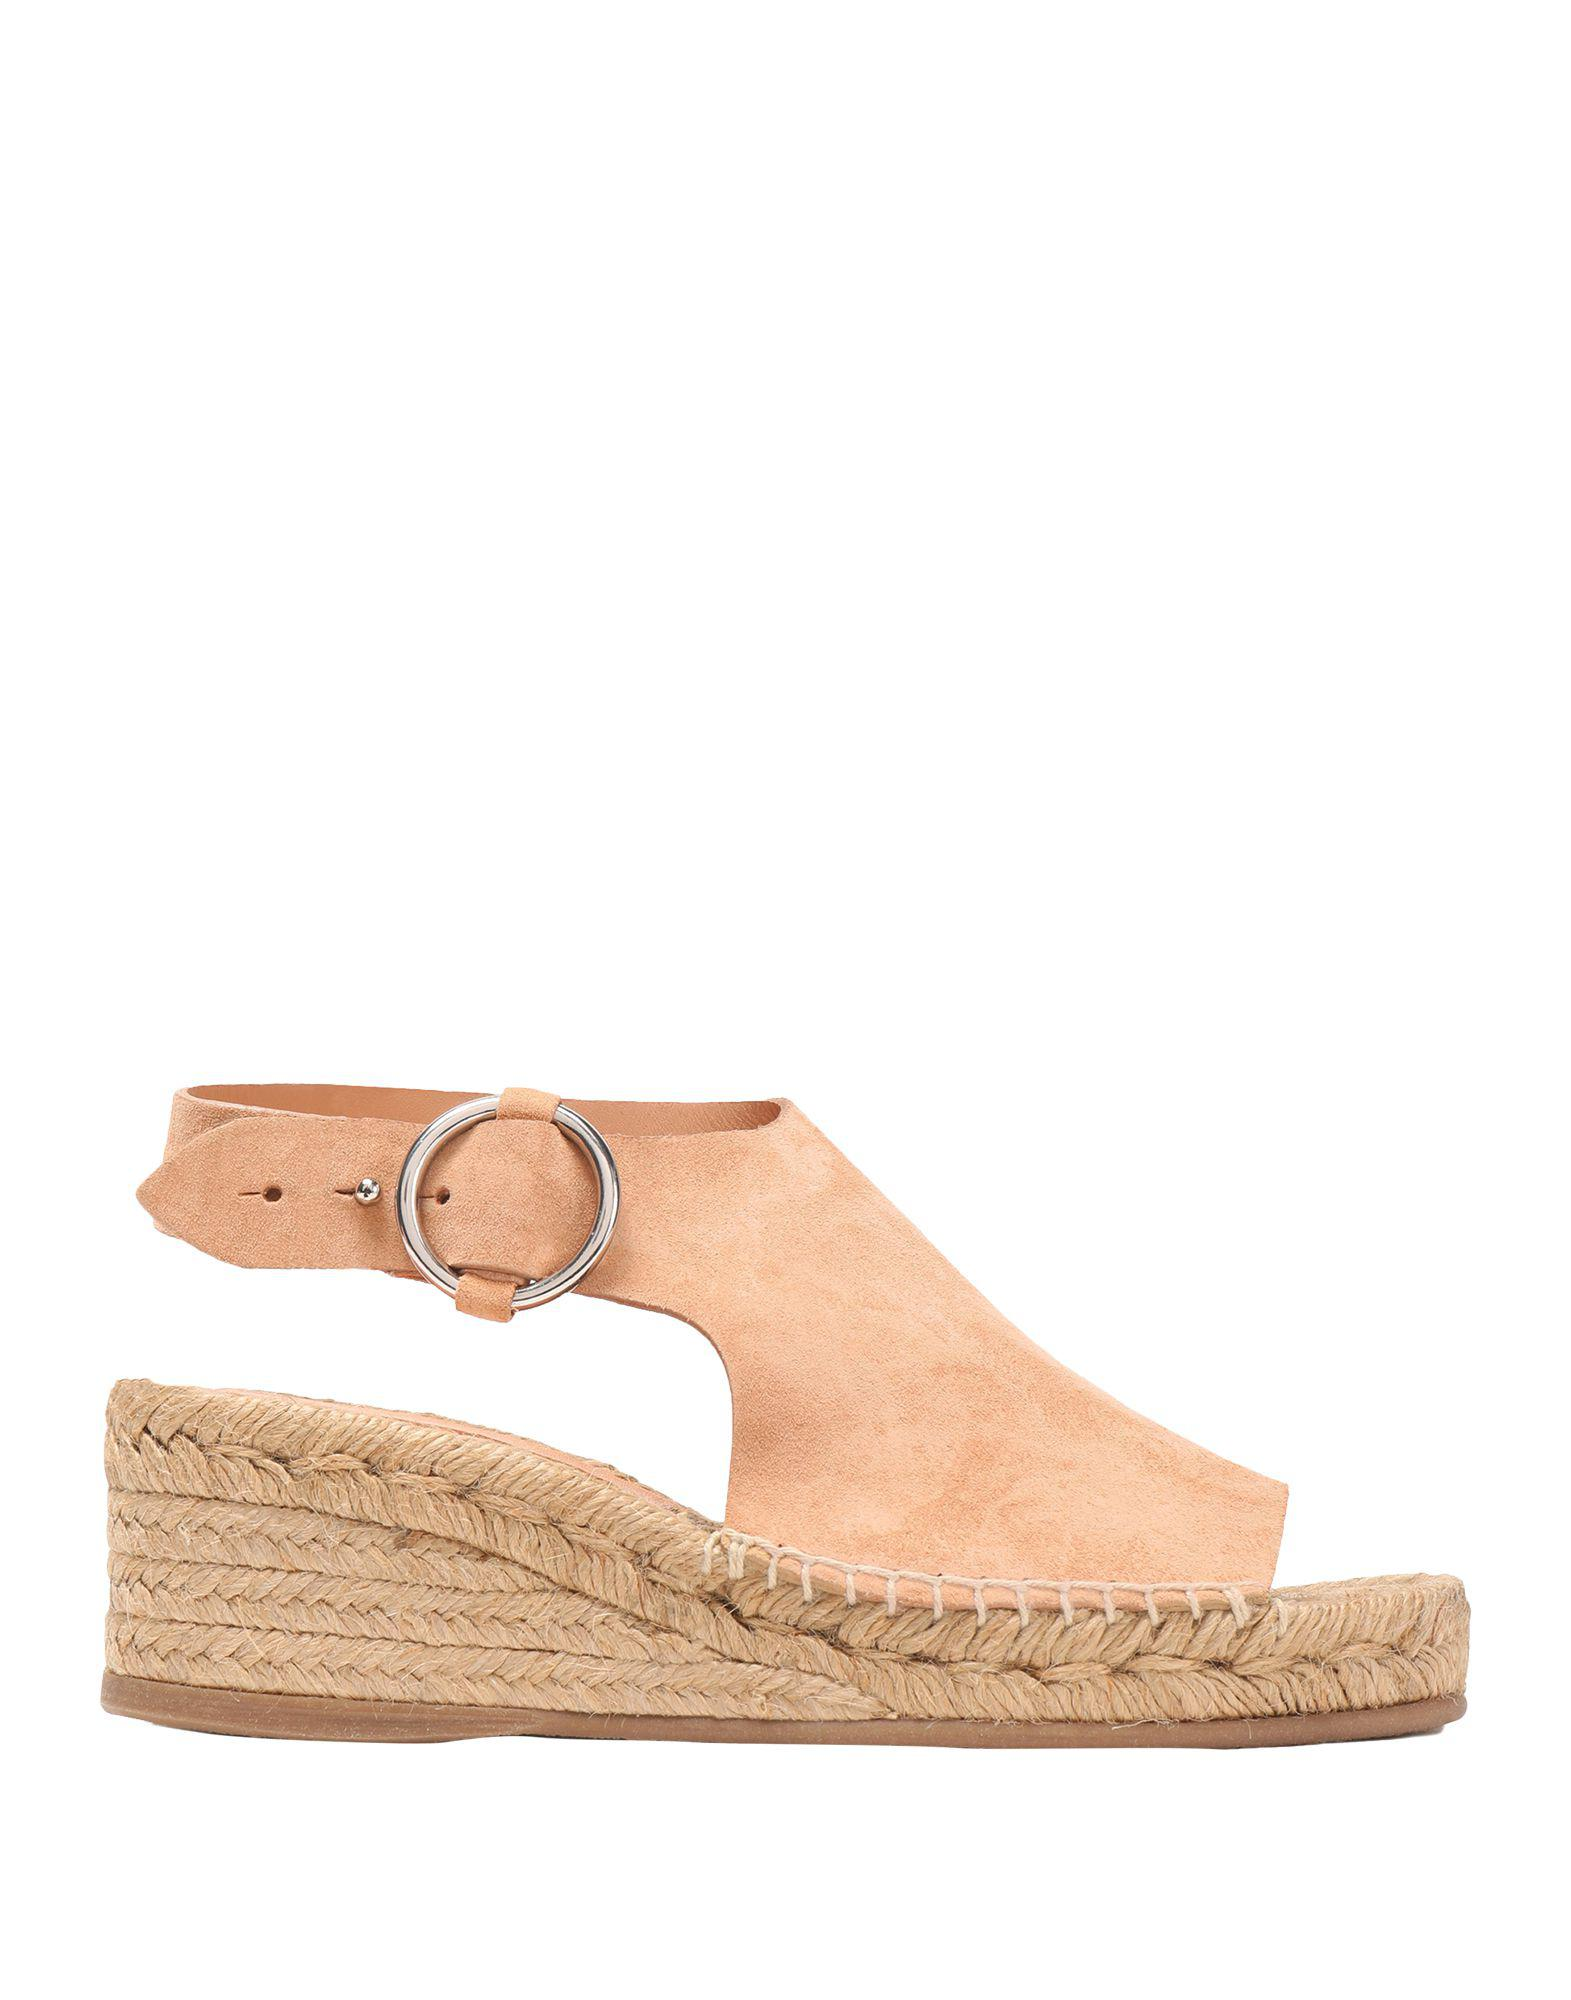 7df6776e262be9 Lyst - Rag   Bone Sandals in Natural - Save 74%